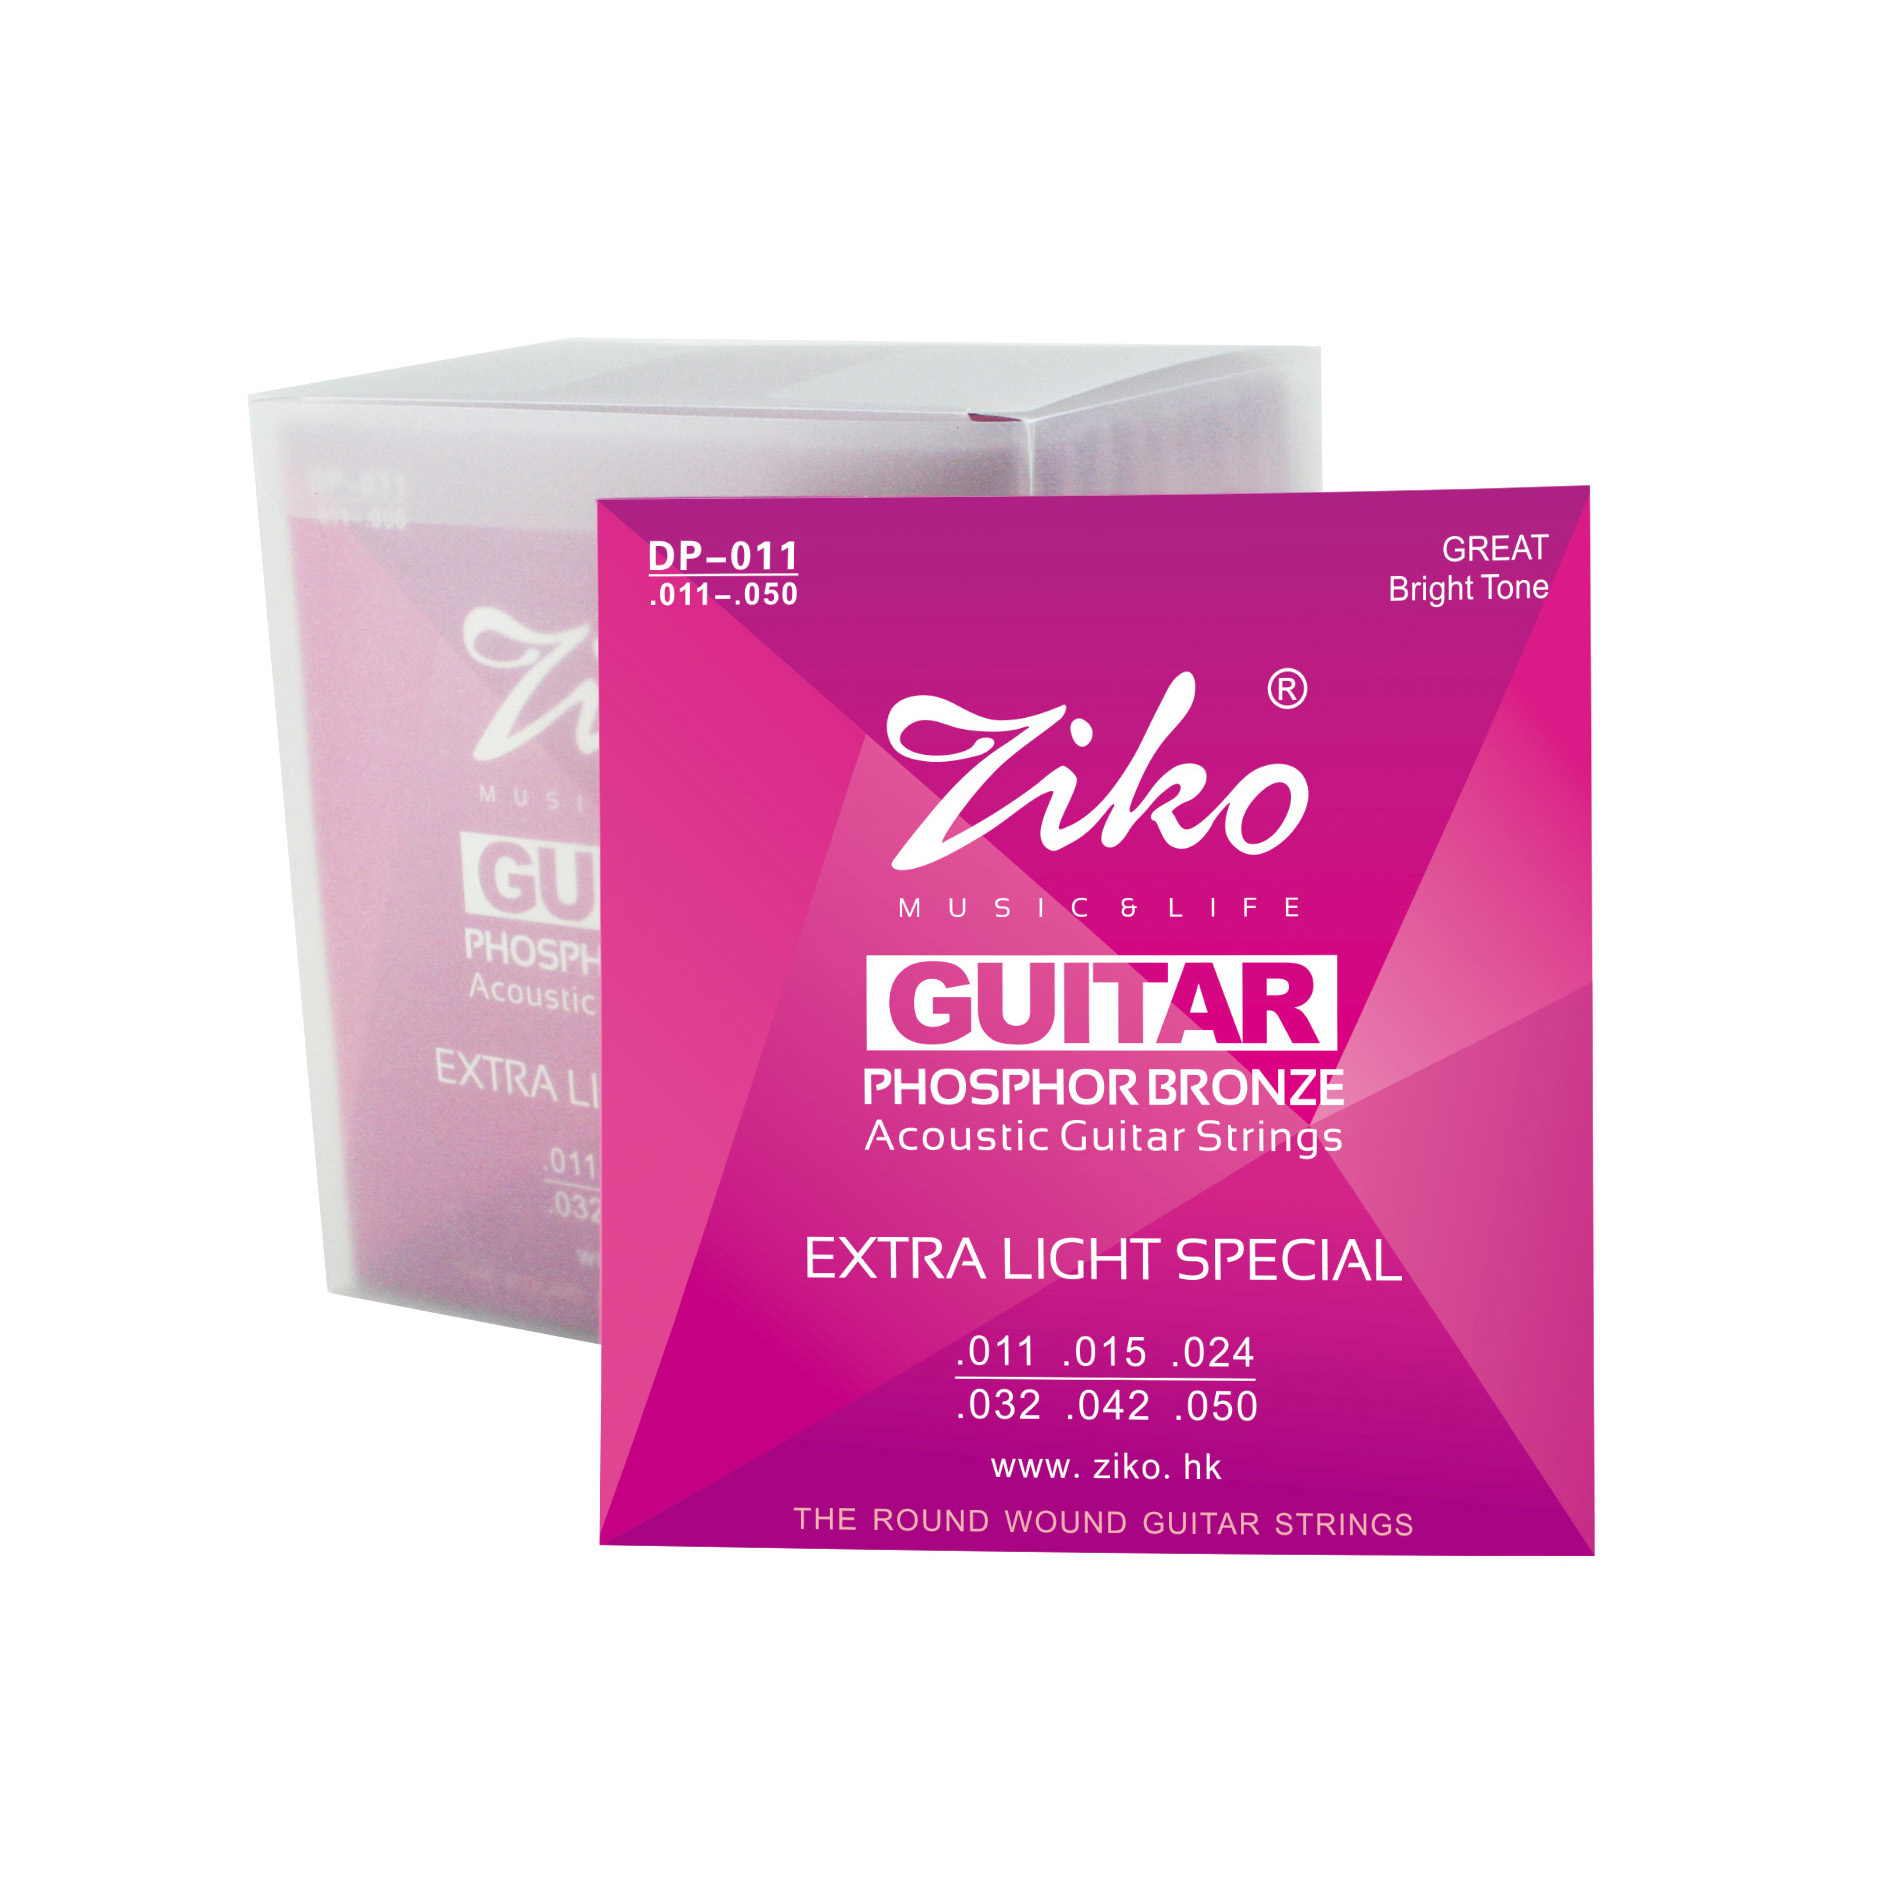 Ziko acoustic guitar strings 011 - 050 wood guitar string1st-6th strings free shipping 38 inch folk guitar to send full color gifts string linden wood guitar six strings with free shipping